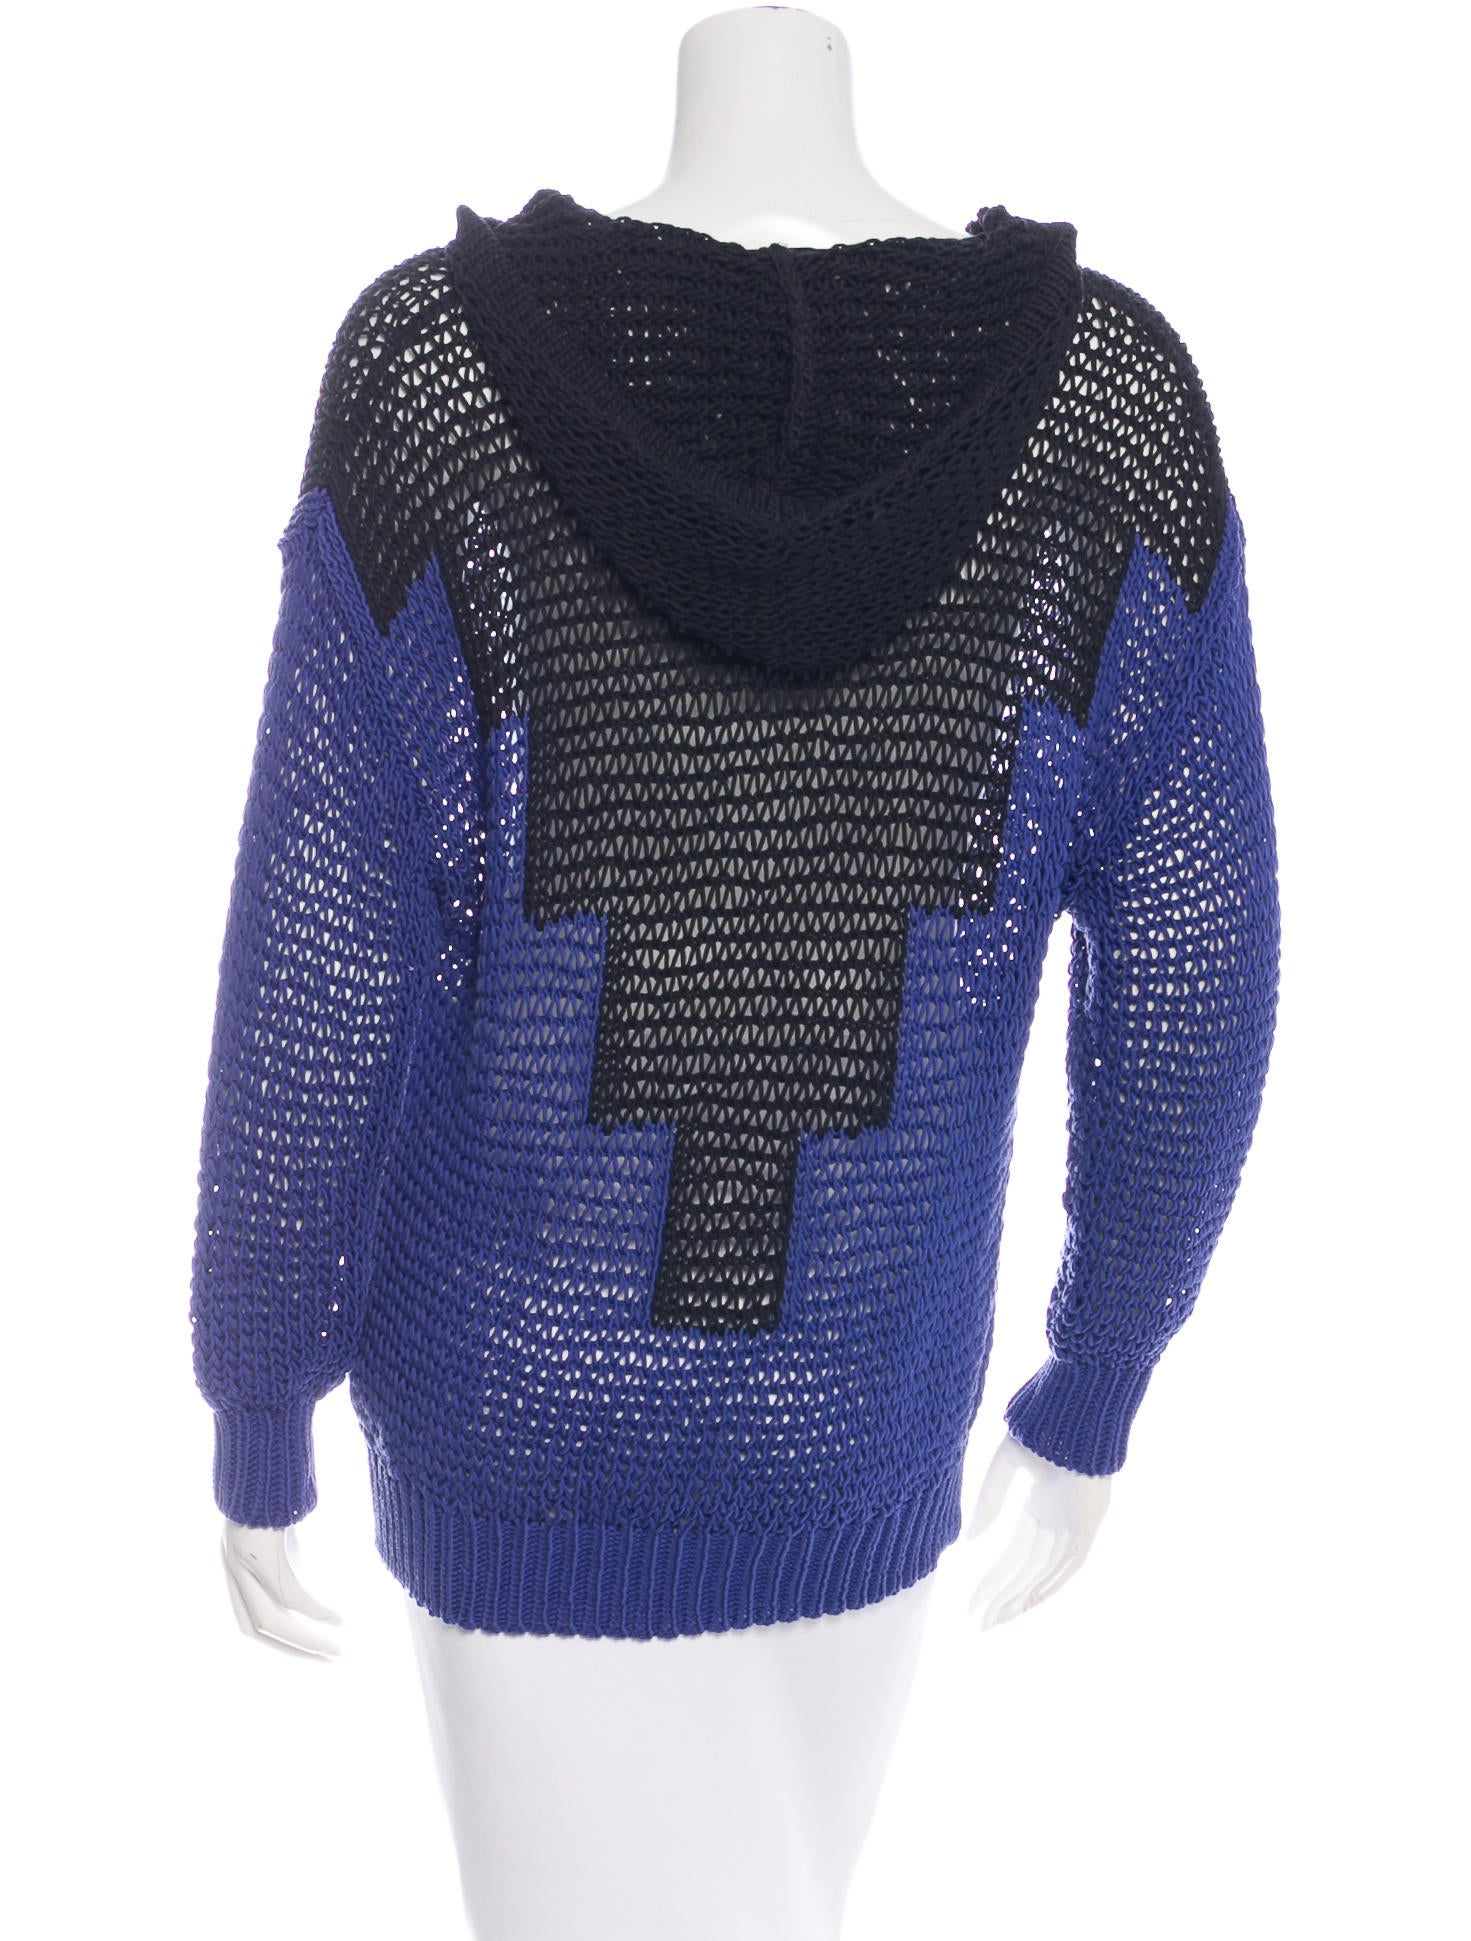 Open Knit Sweater Pattern : Alexander Wang Open-Knit Oversize Sweater - Clothing ...